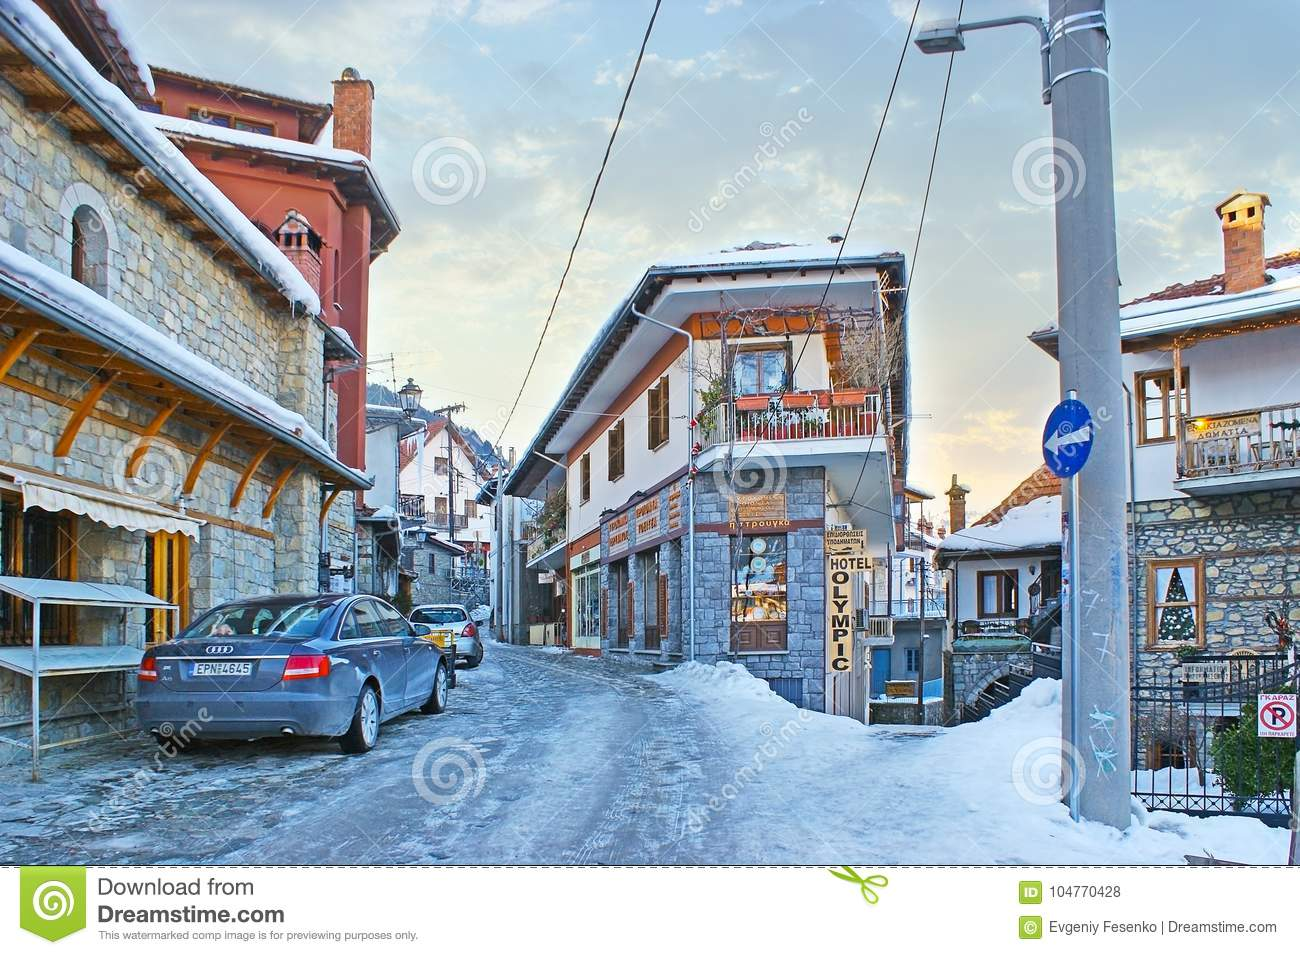 The streets of Metsovo